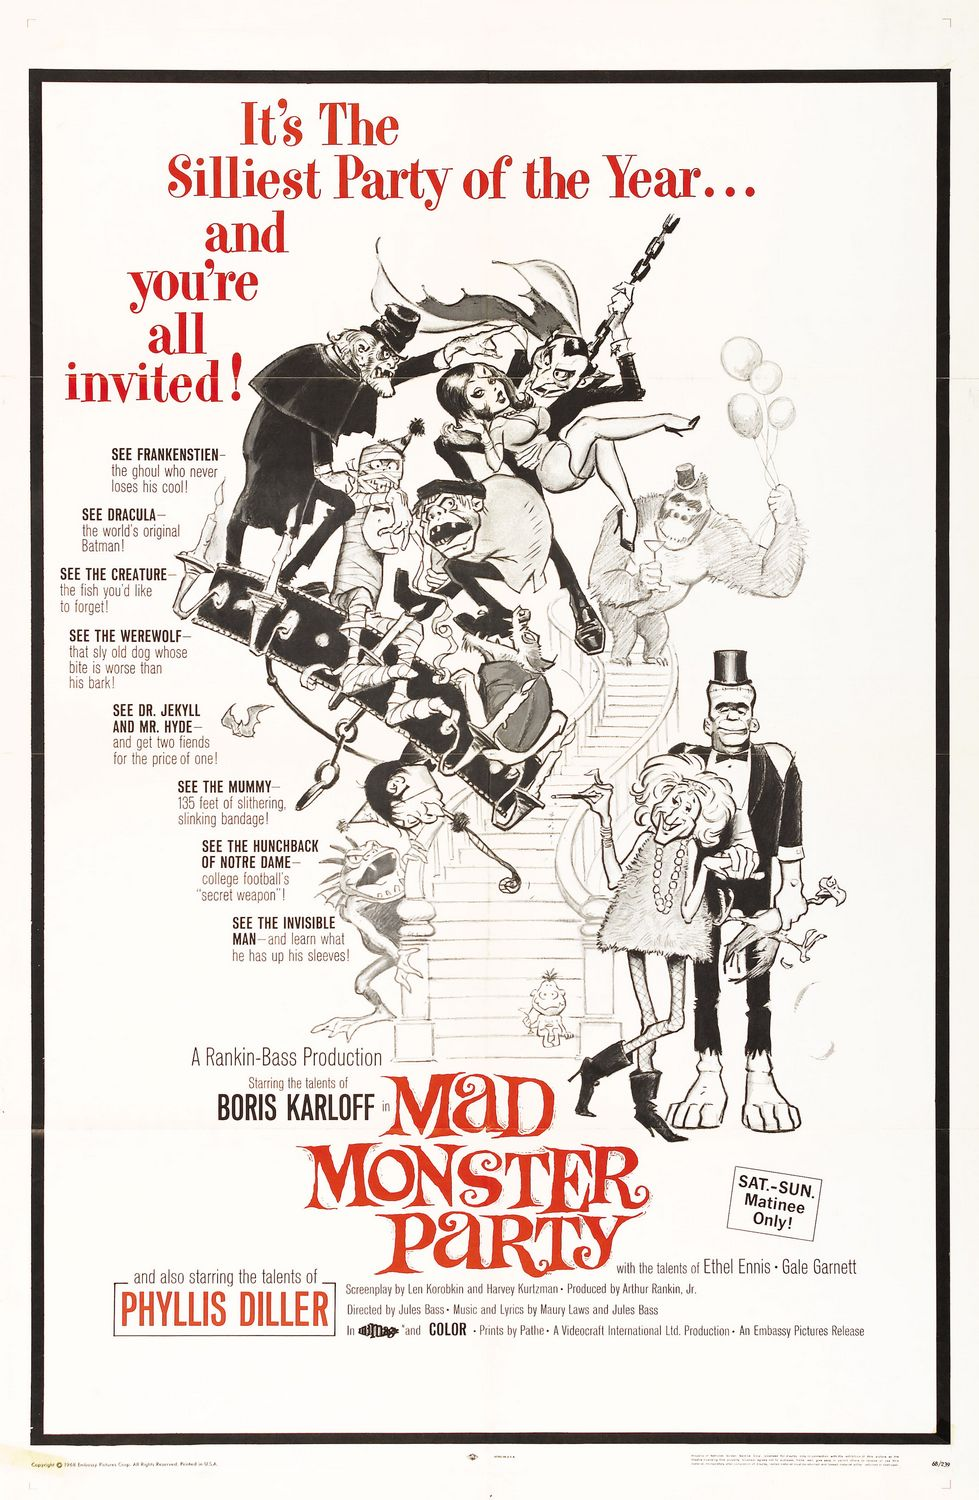 Mad Monster Party - it's the silliest Party of the year and you are all invited, see Frankenstien, See Dracula, see the Creature, see the Werewolf, see Dr. Jekyll and Mr Hyde, see the Mummy, see the Hunchback of Notre Dame, 'see' the Invisible Man  - Boris Karloff - Phyllis Diller - Culp Old Special Film Movie Poster